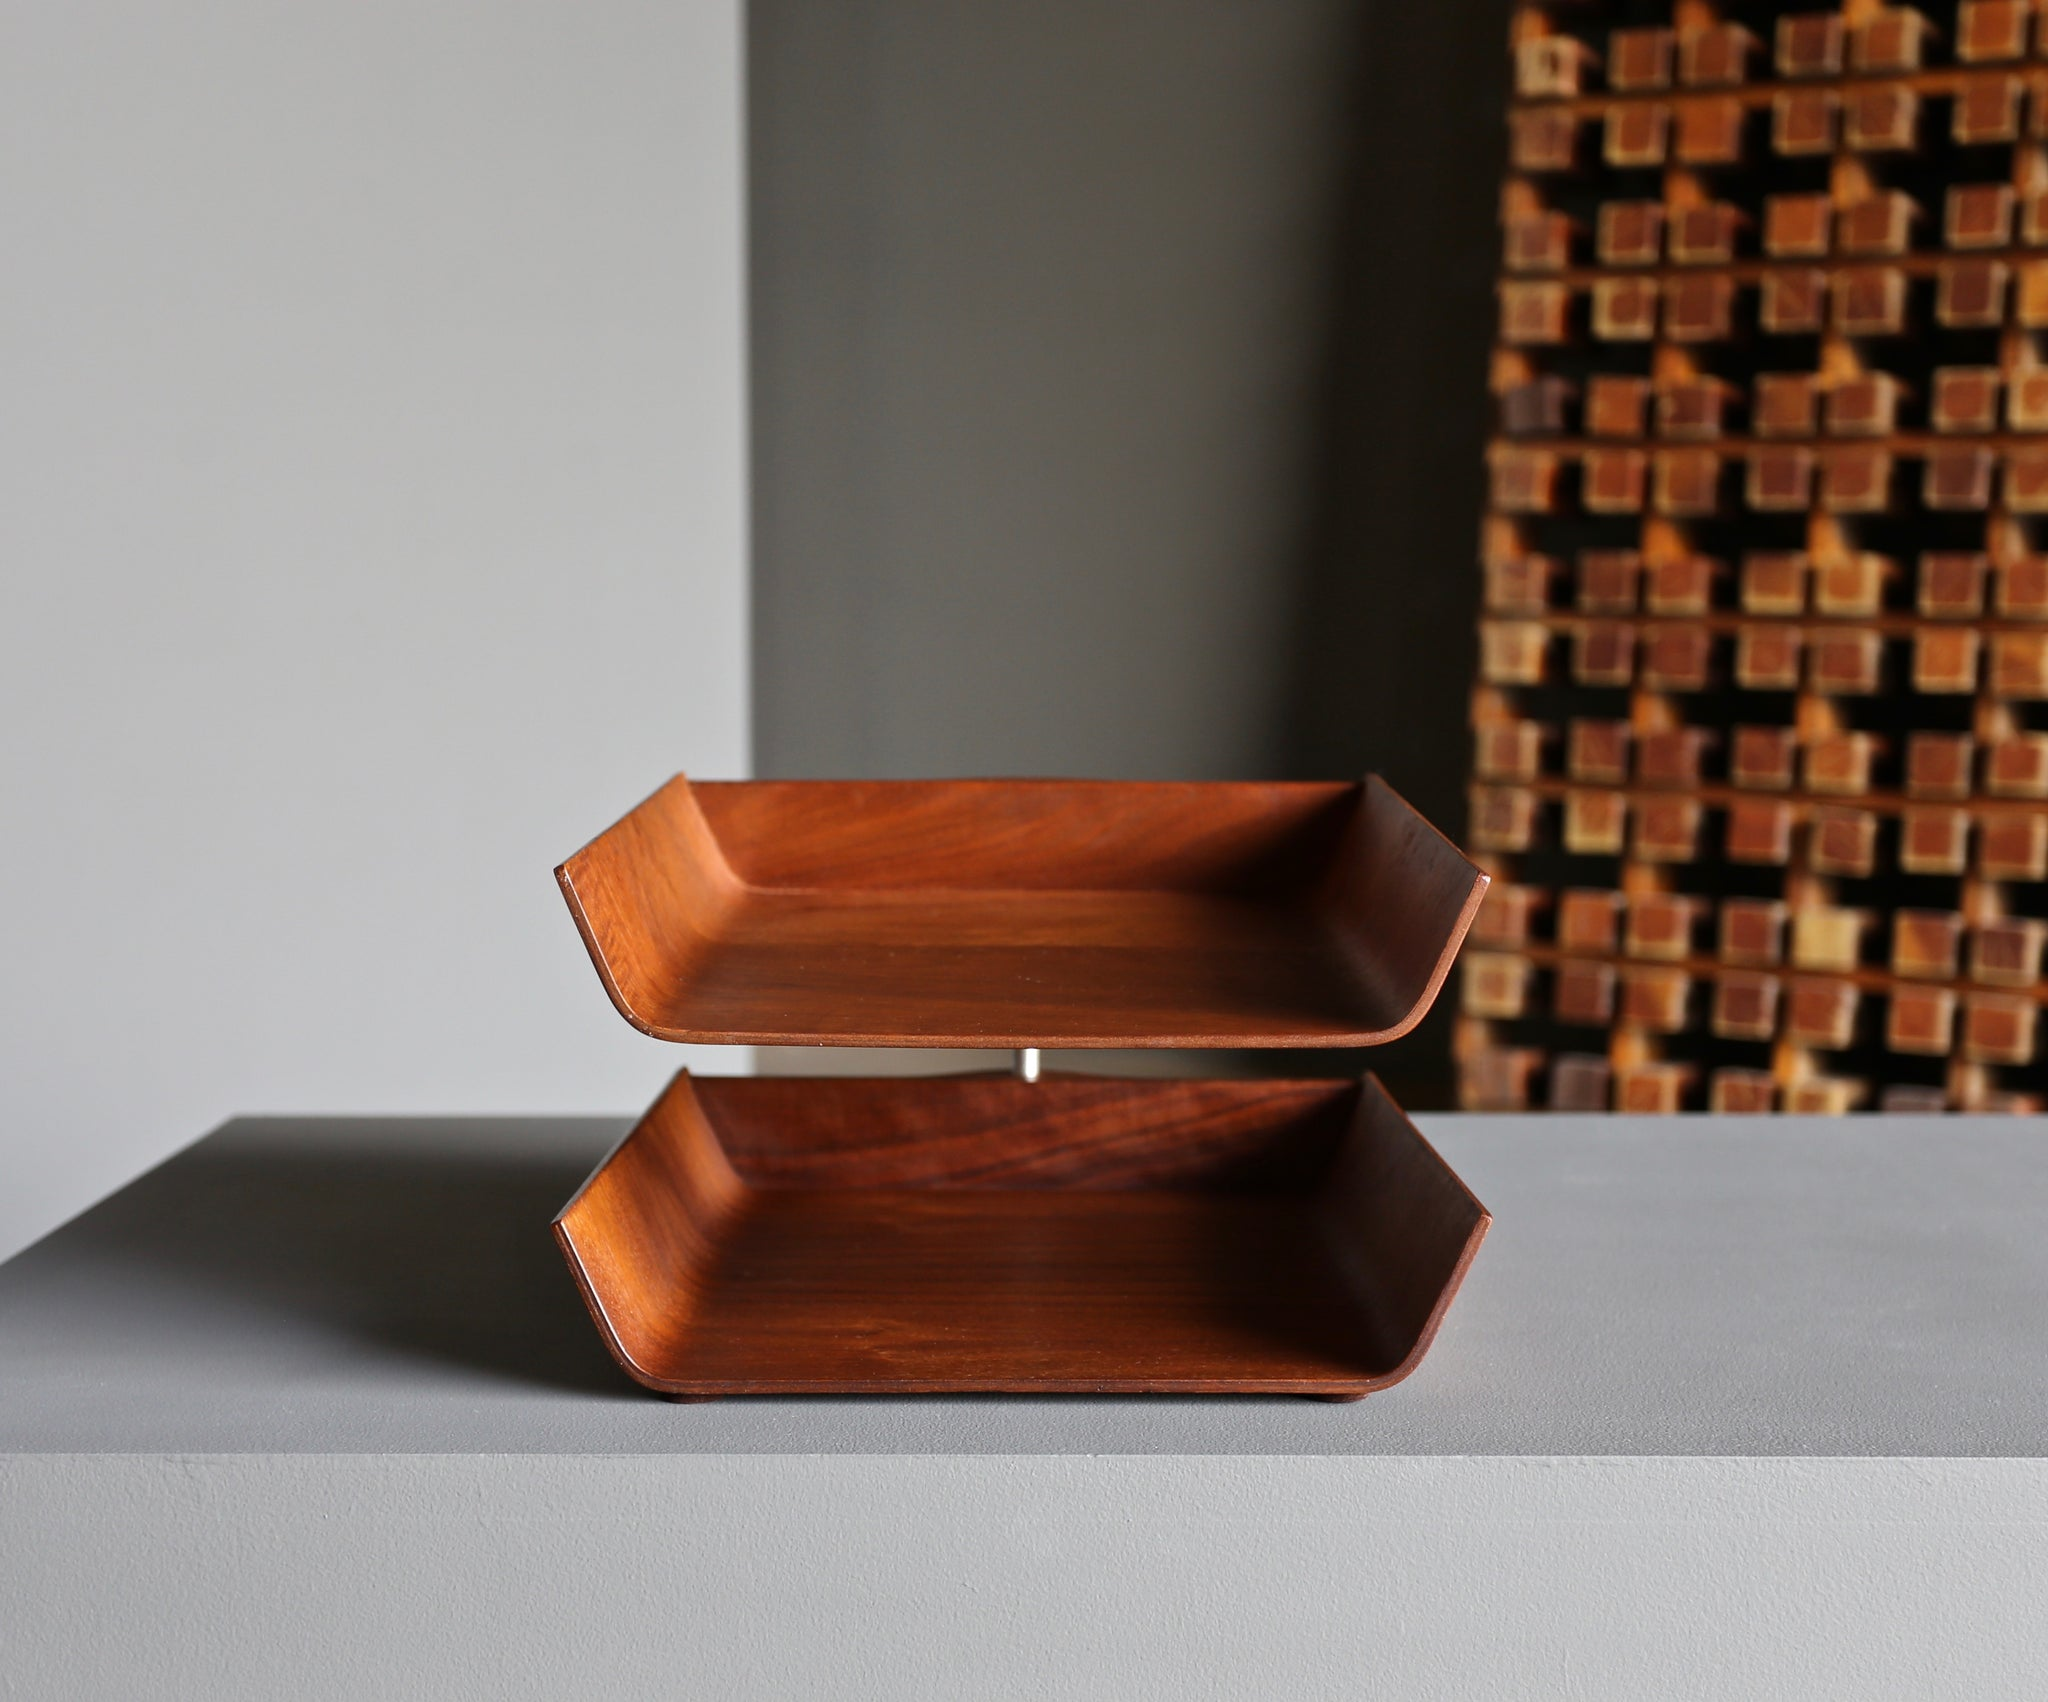 = SOLD = Florence Knoll Molded Plywood Architectural Letter Tray circa 1960